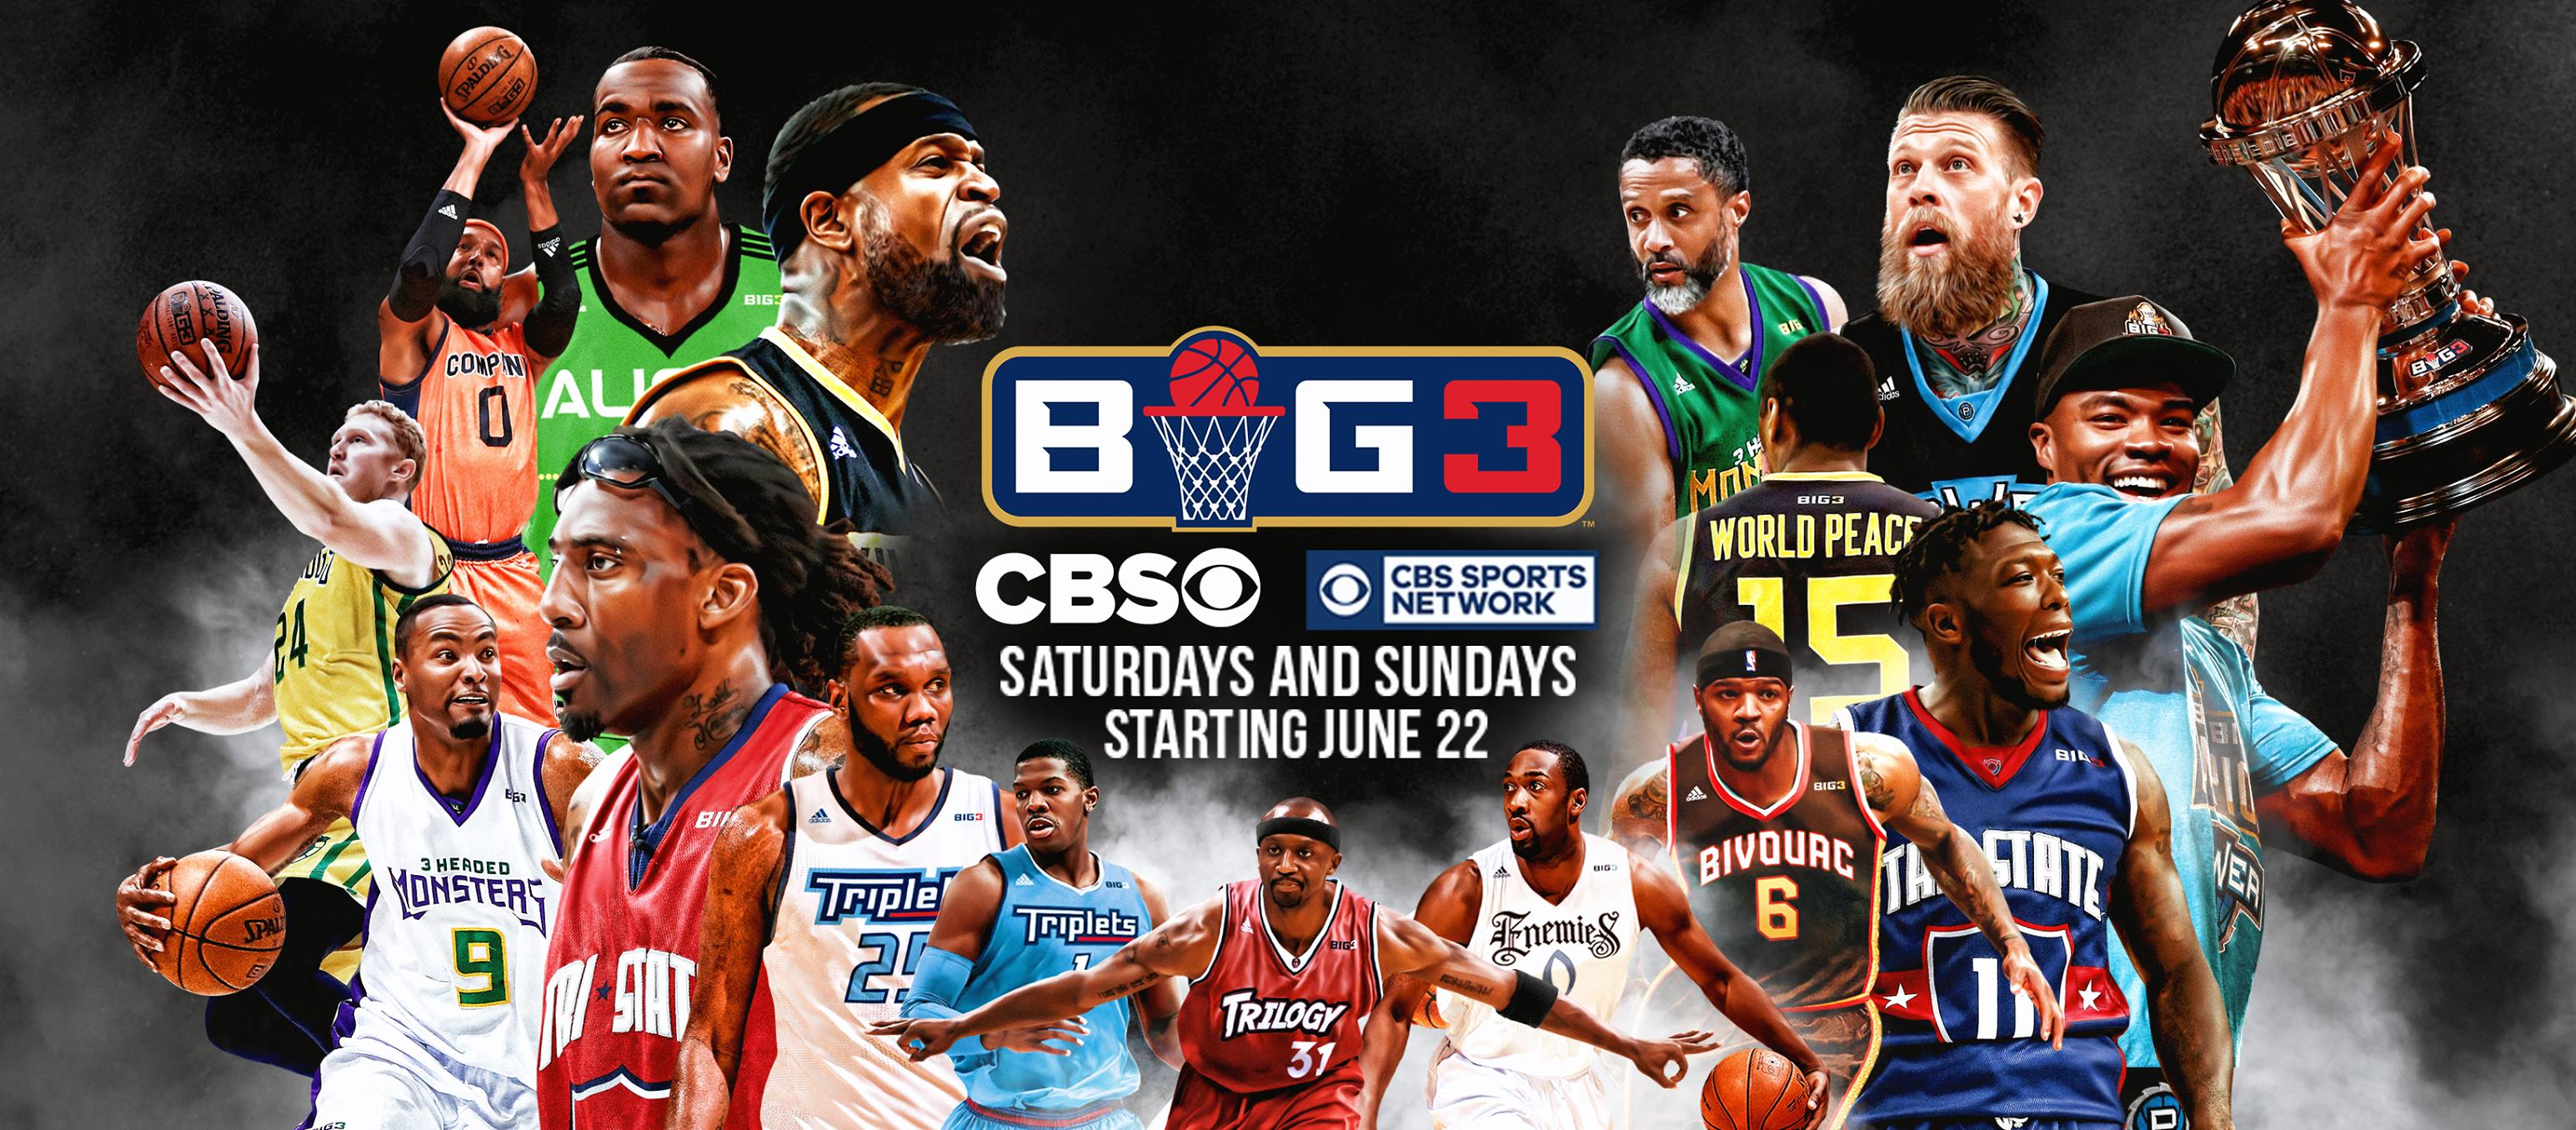 CBS Sports and Ice Cube's BIG3 Agree to Exclusive TV Deal